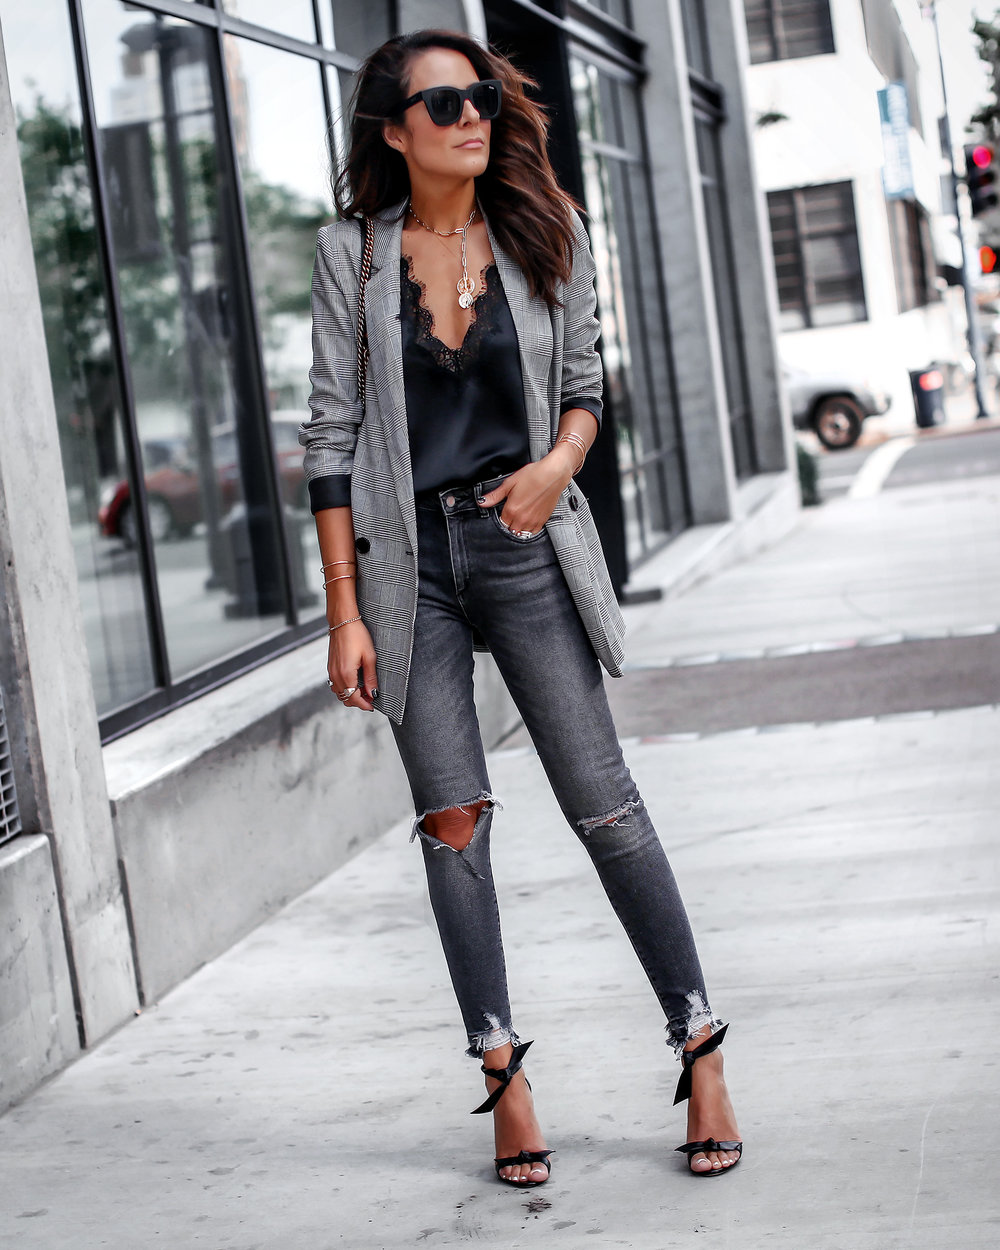 Plaid Blaze Cami NYC Ripped Denim Streetstyle Blogger Lucys Whims.jpg